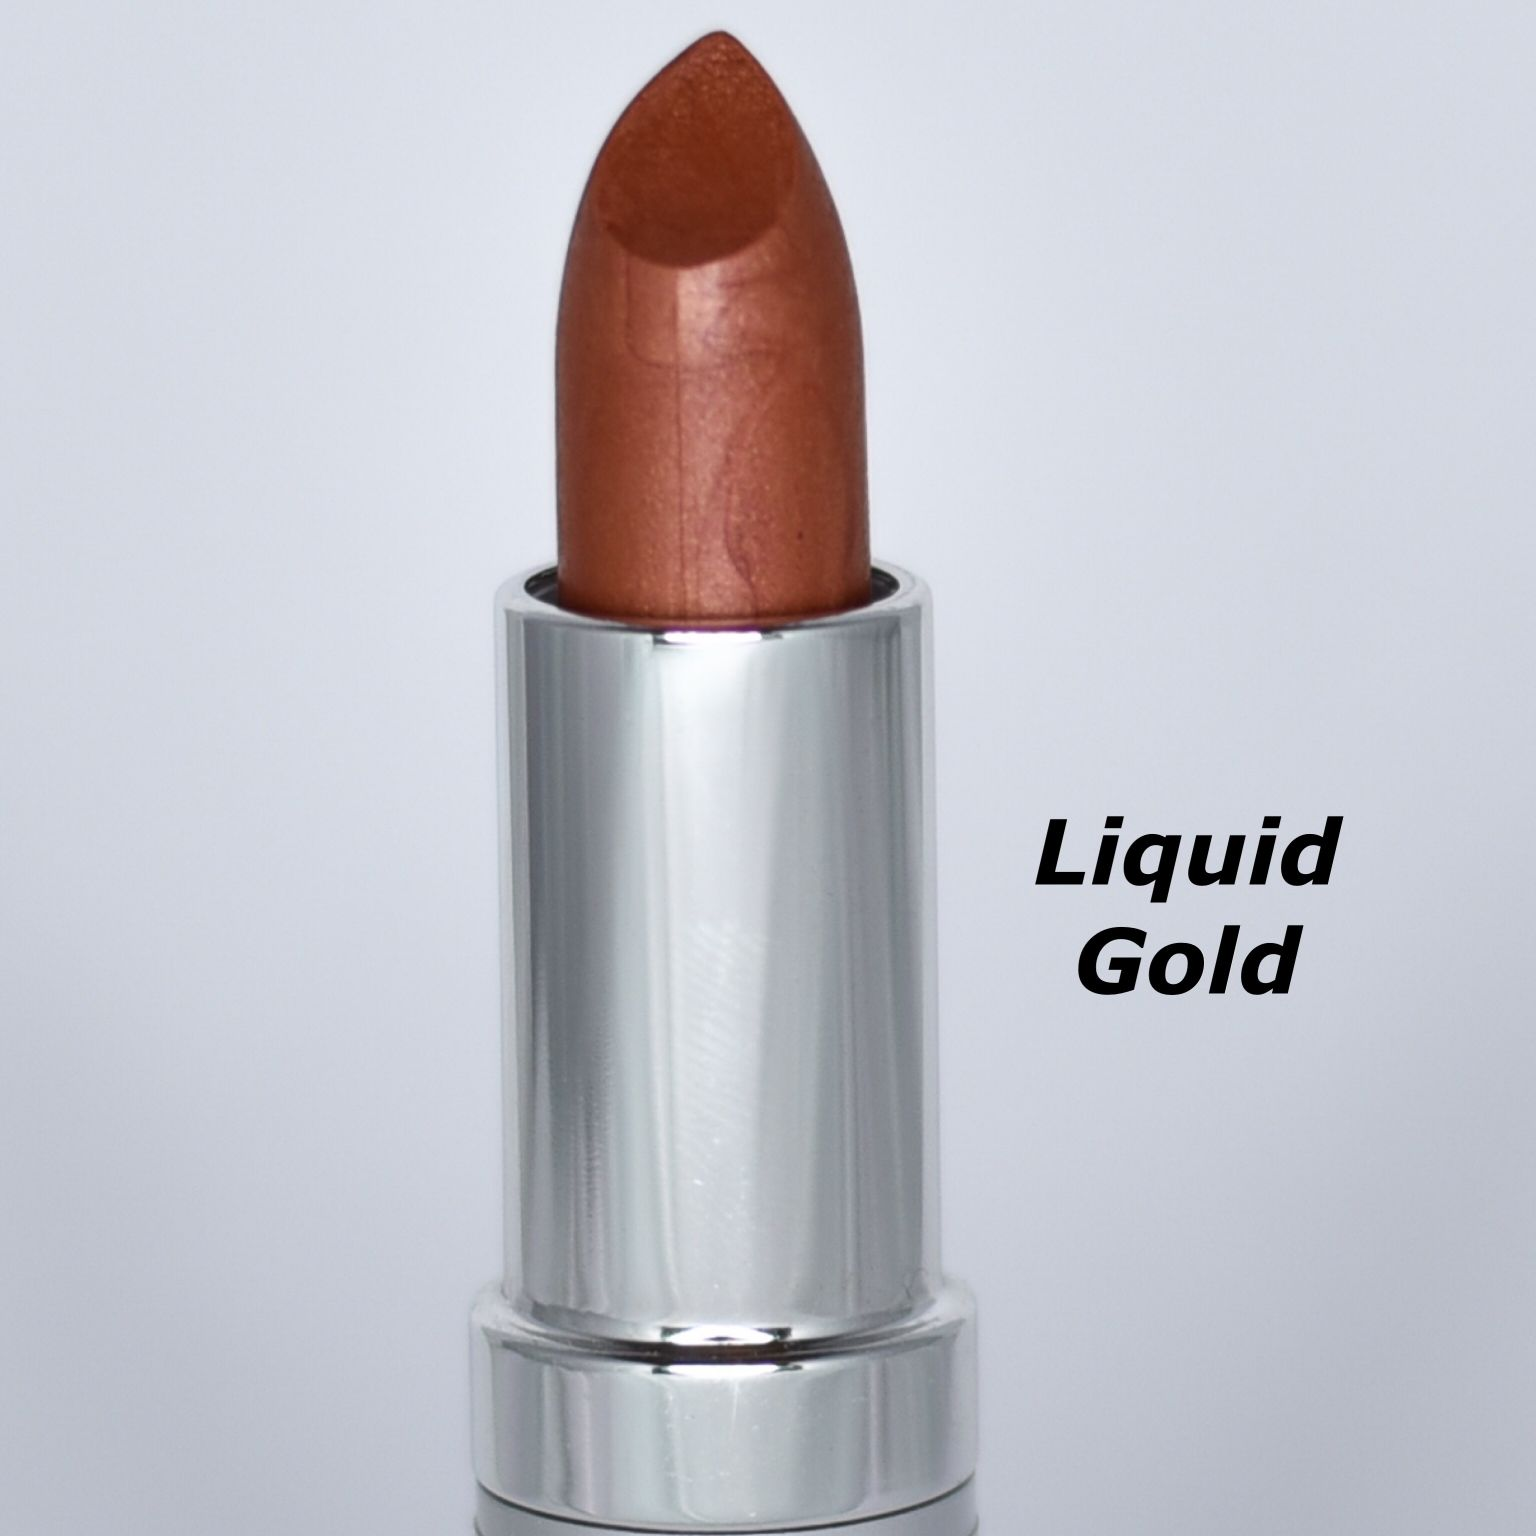 Liquid Gold Lipstick